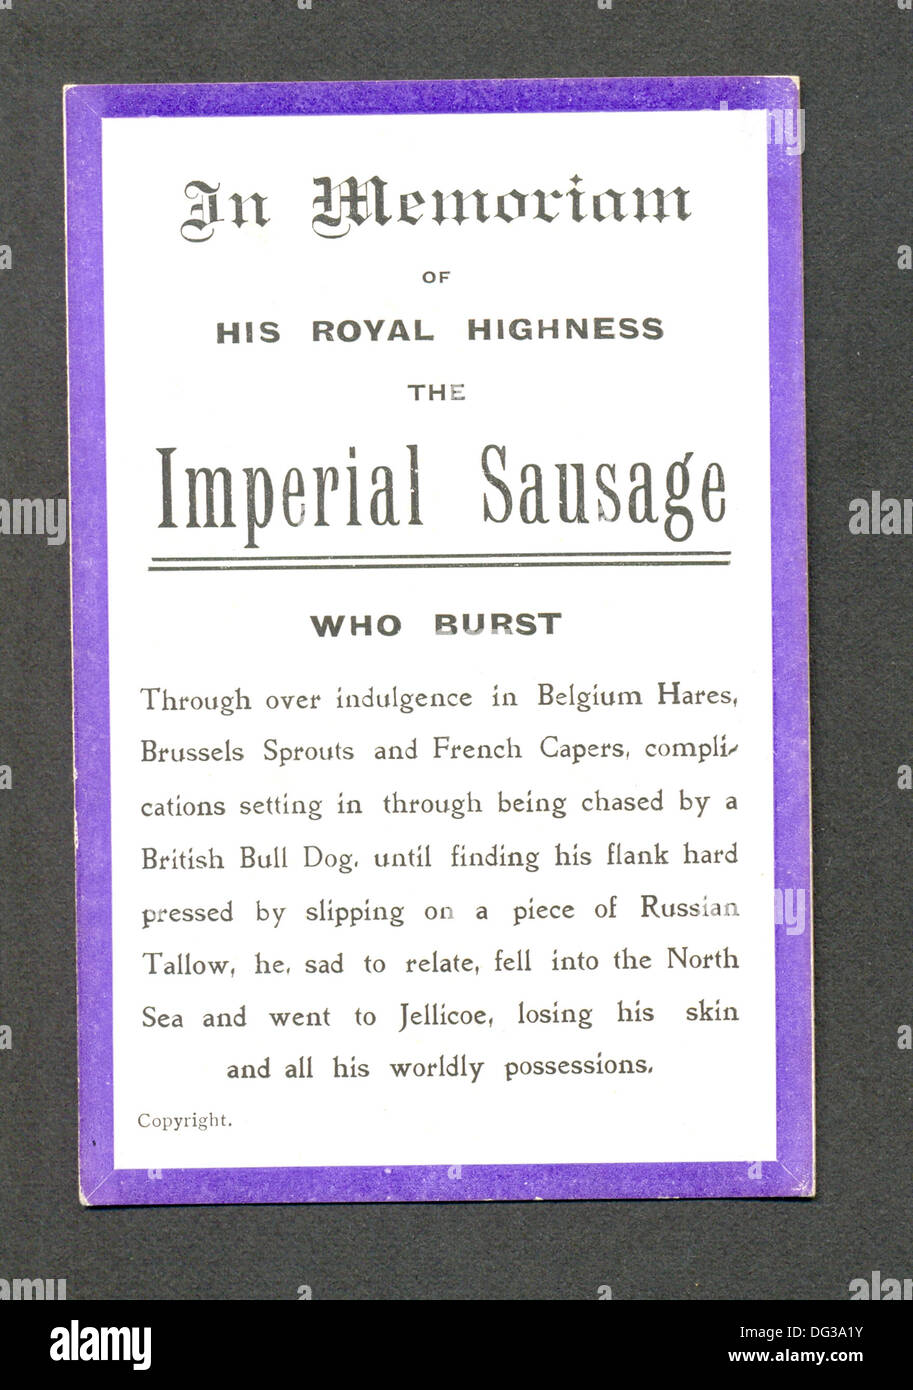 World War One comic card mourning death of  the German sausage - Stock Image